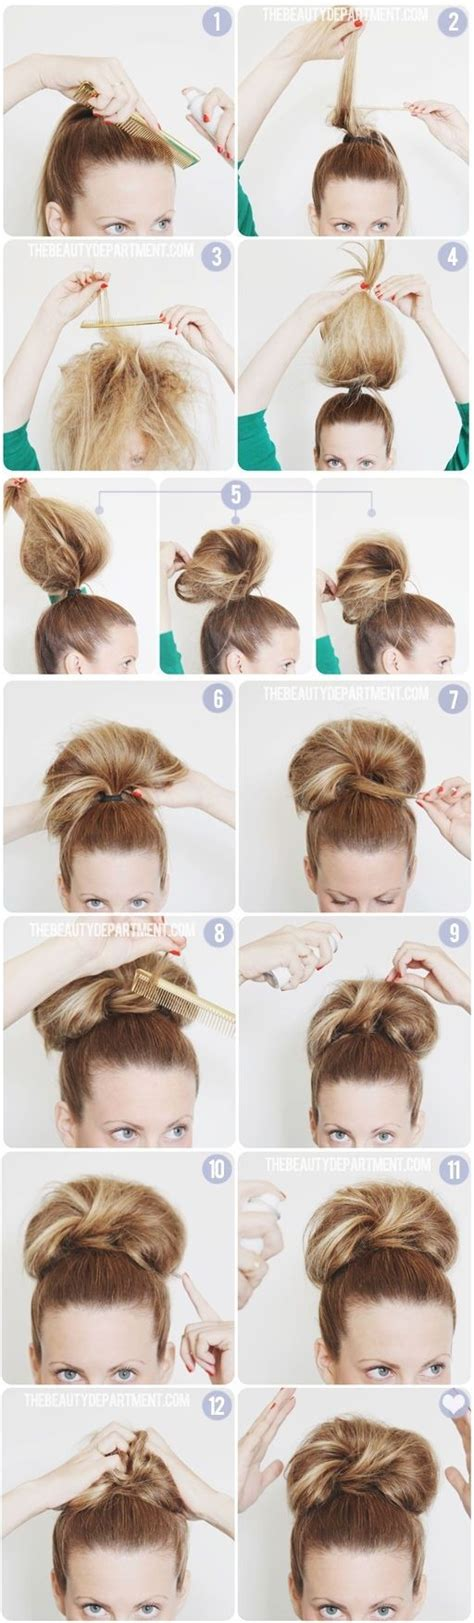 hairstyles buns tutorials 10 simple yet stylish updo hairstyle tutorials for all